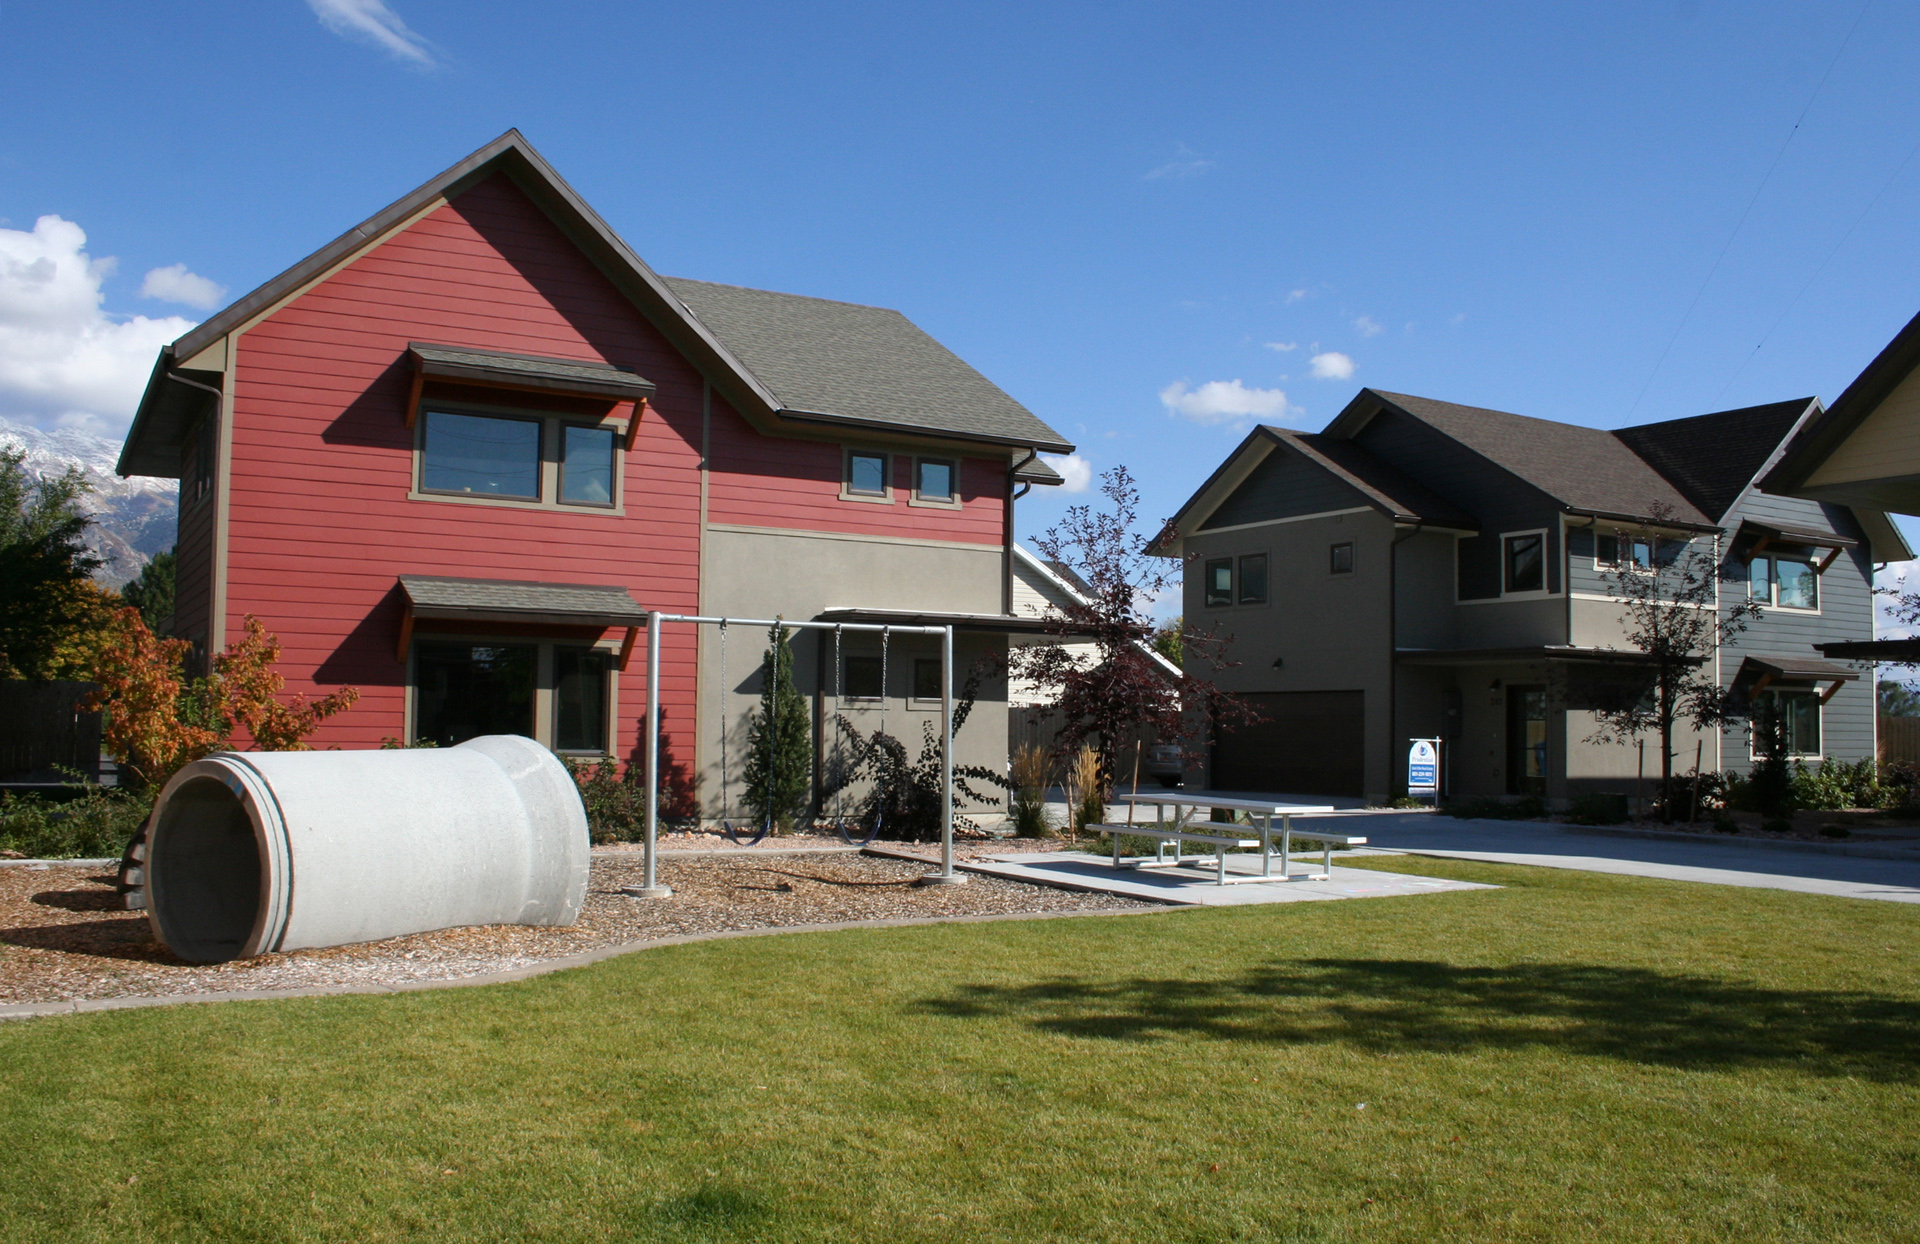 Crown homes sustainable affordable housing amd architecture for Affordable lakefront homes